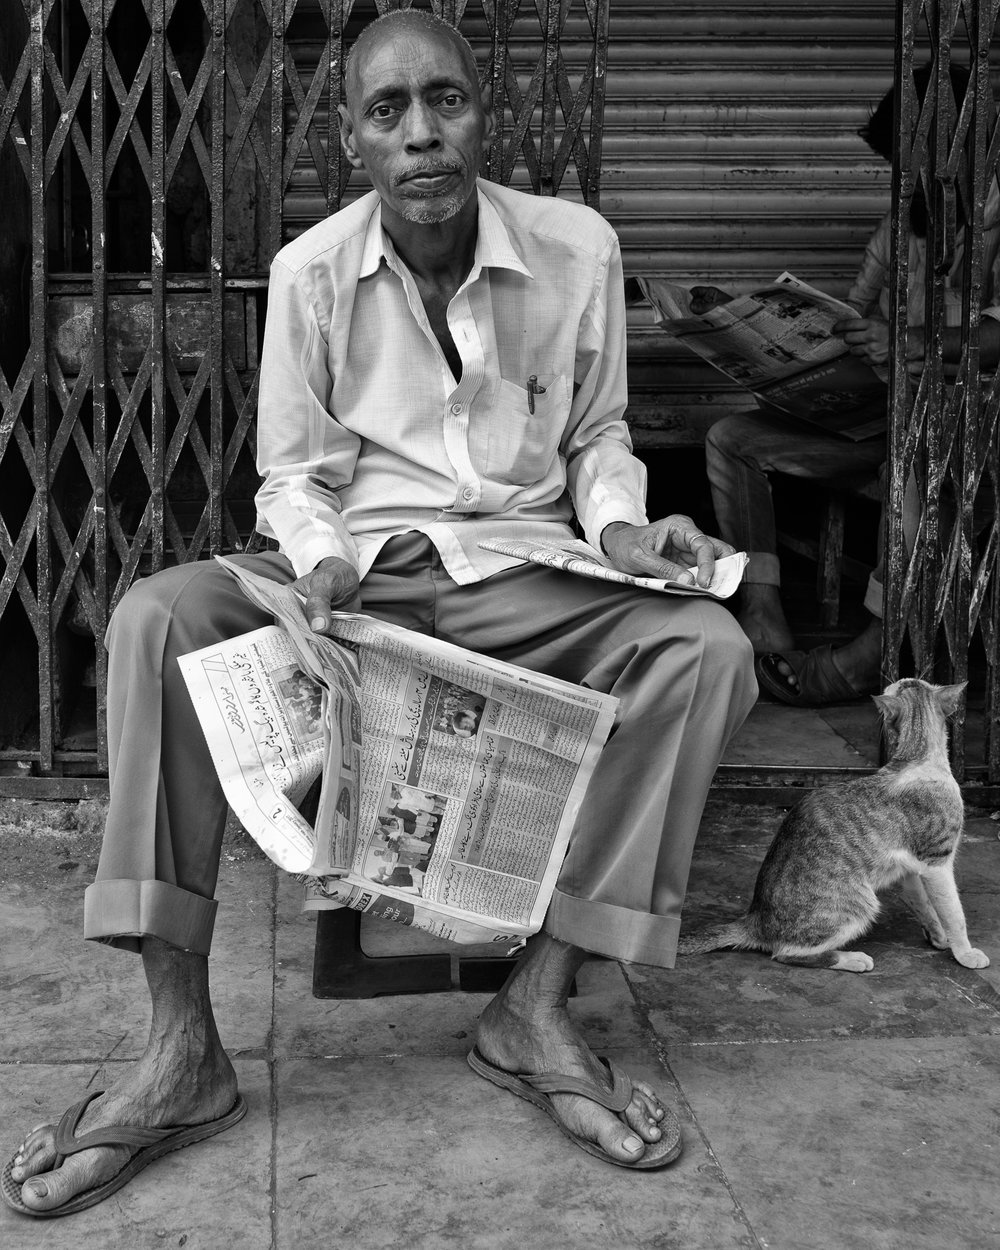 gentleman with his paper, mumbai